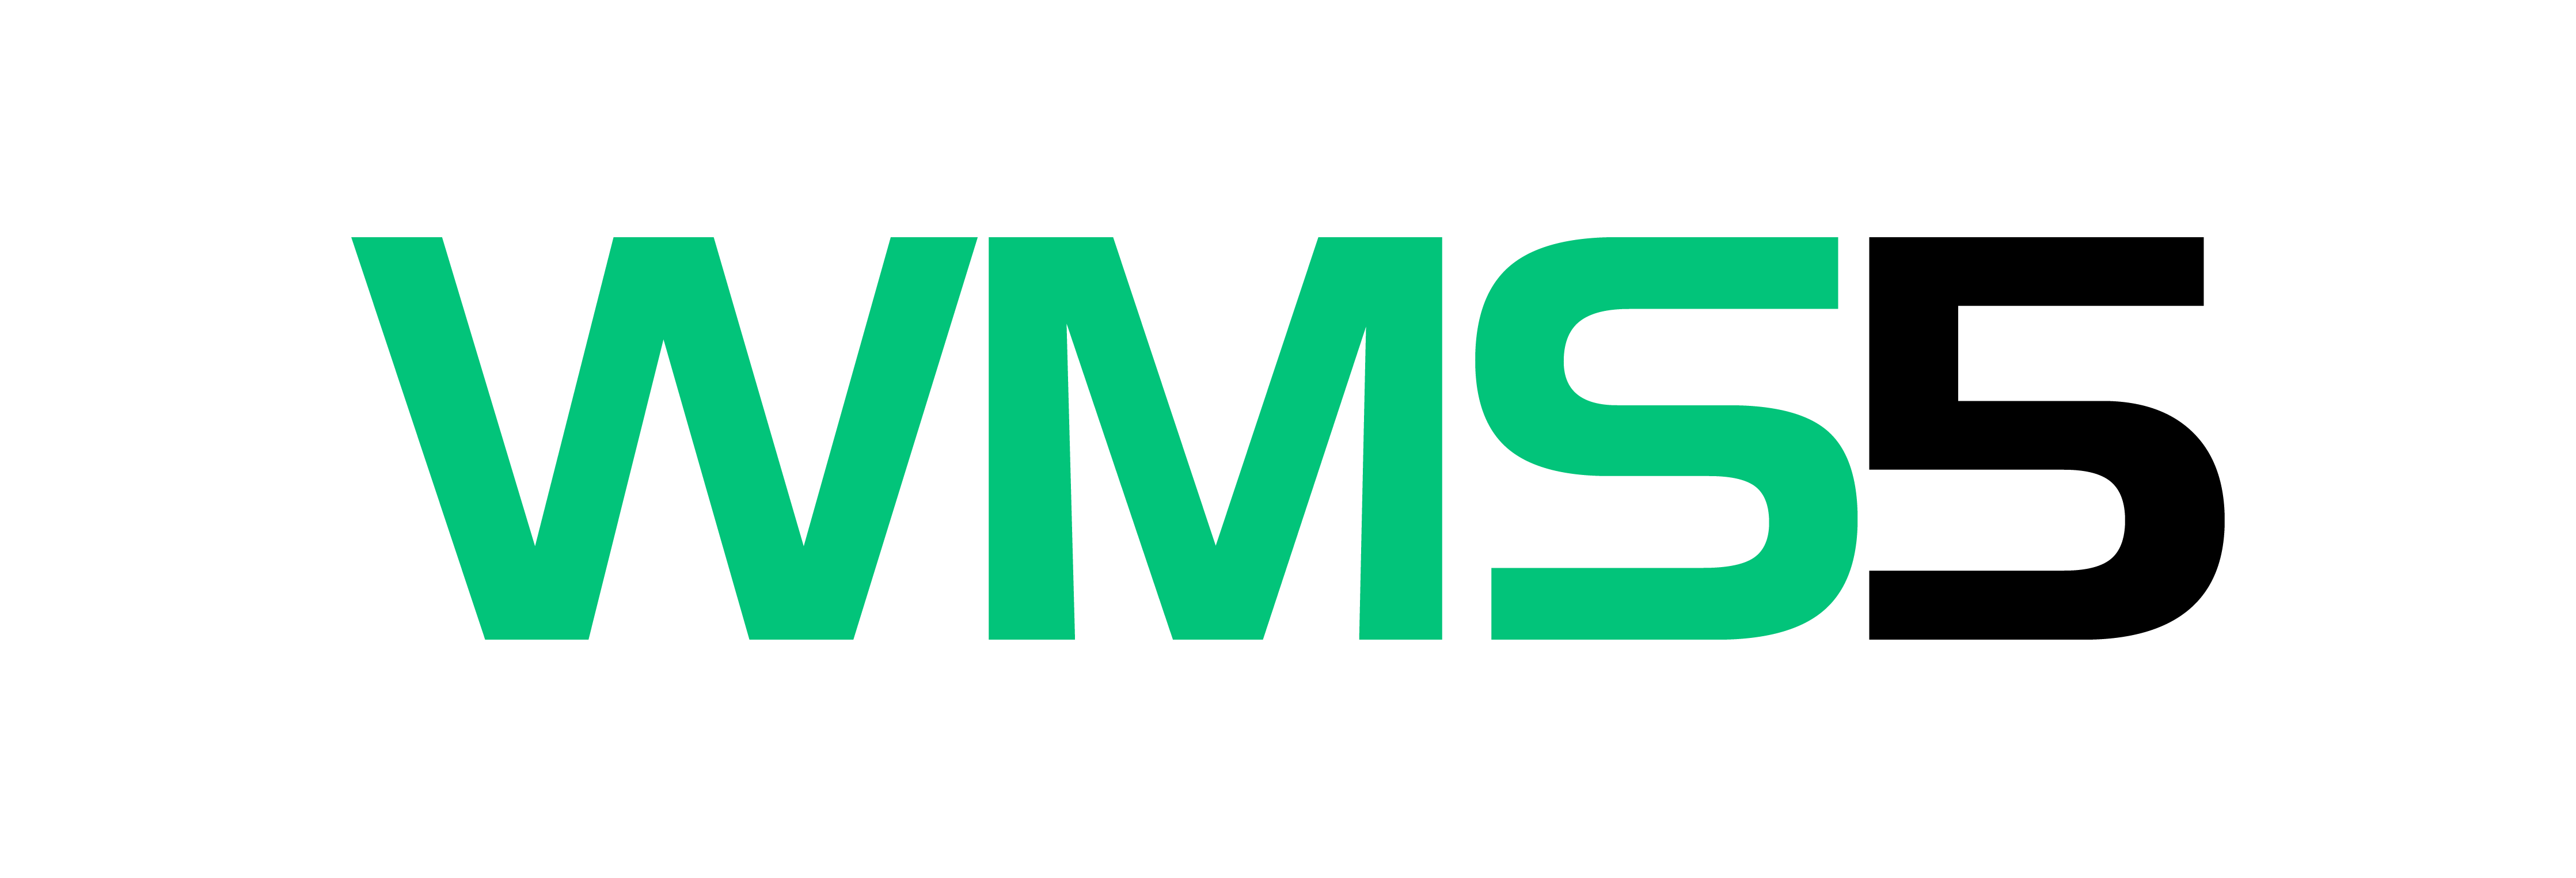 IDESS IT WMS5 Workforce Management System